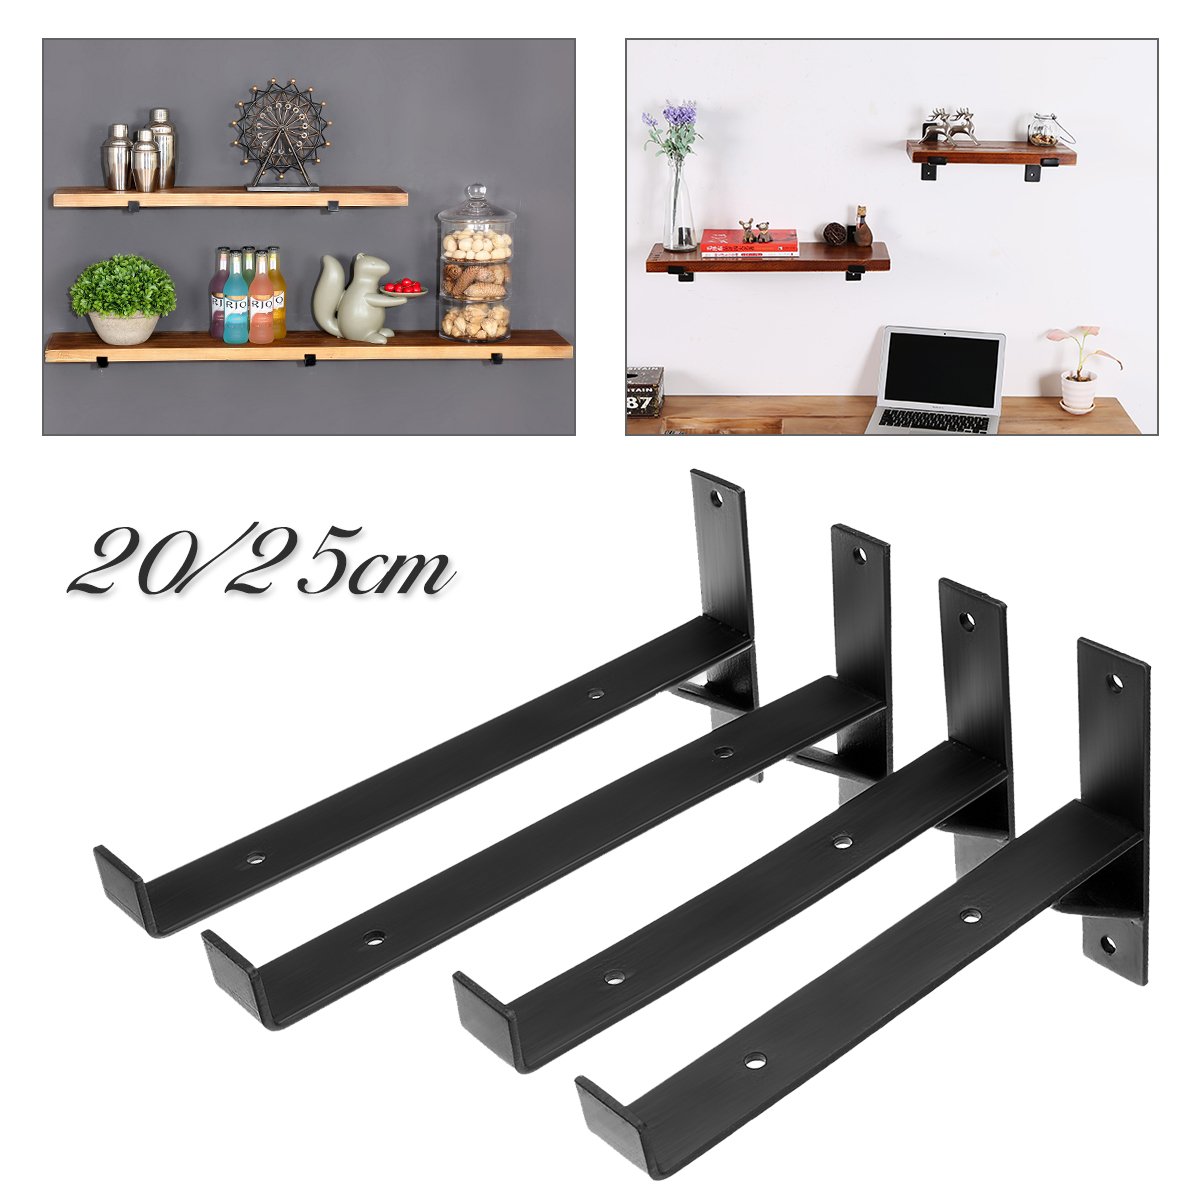 20/25cm Iron Scaffold Board Wall Mounted Shelf Bracket Bathroom Shower Storage Vintage Black Shelf